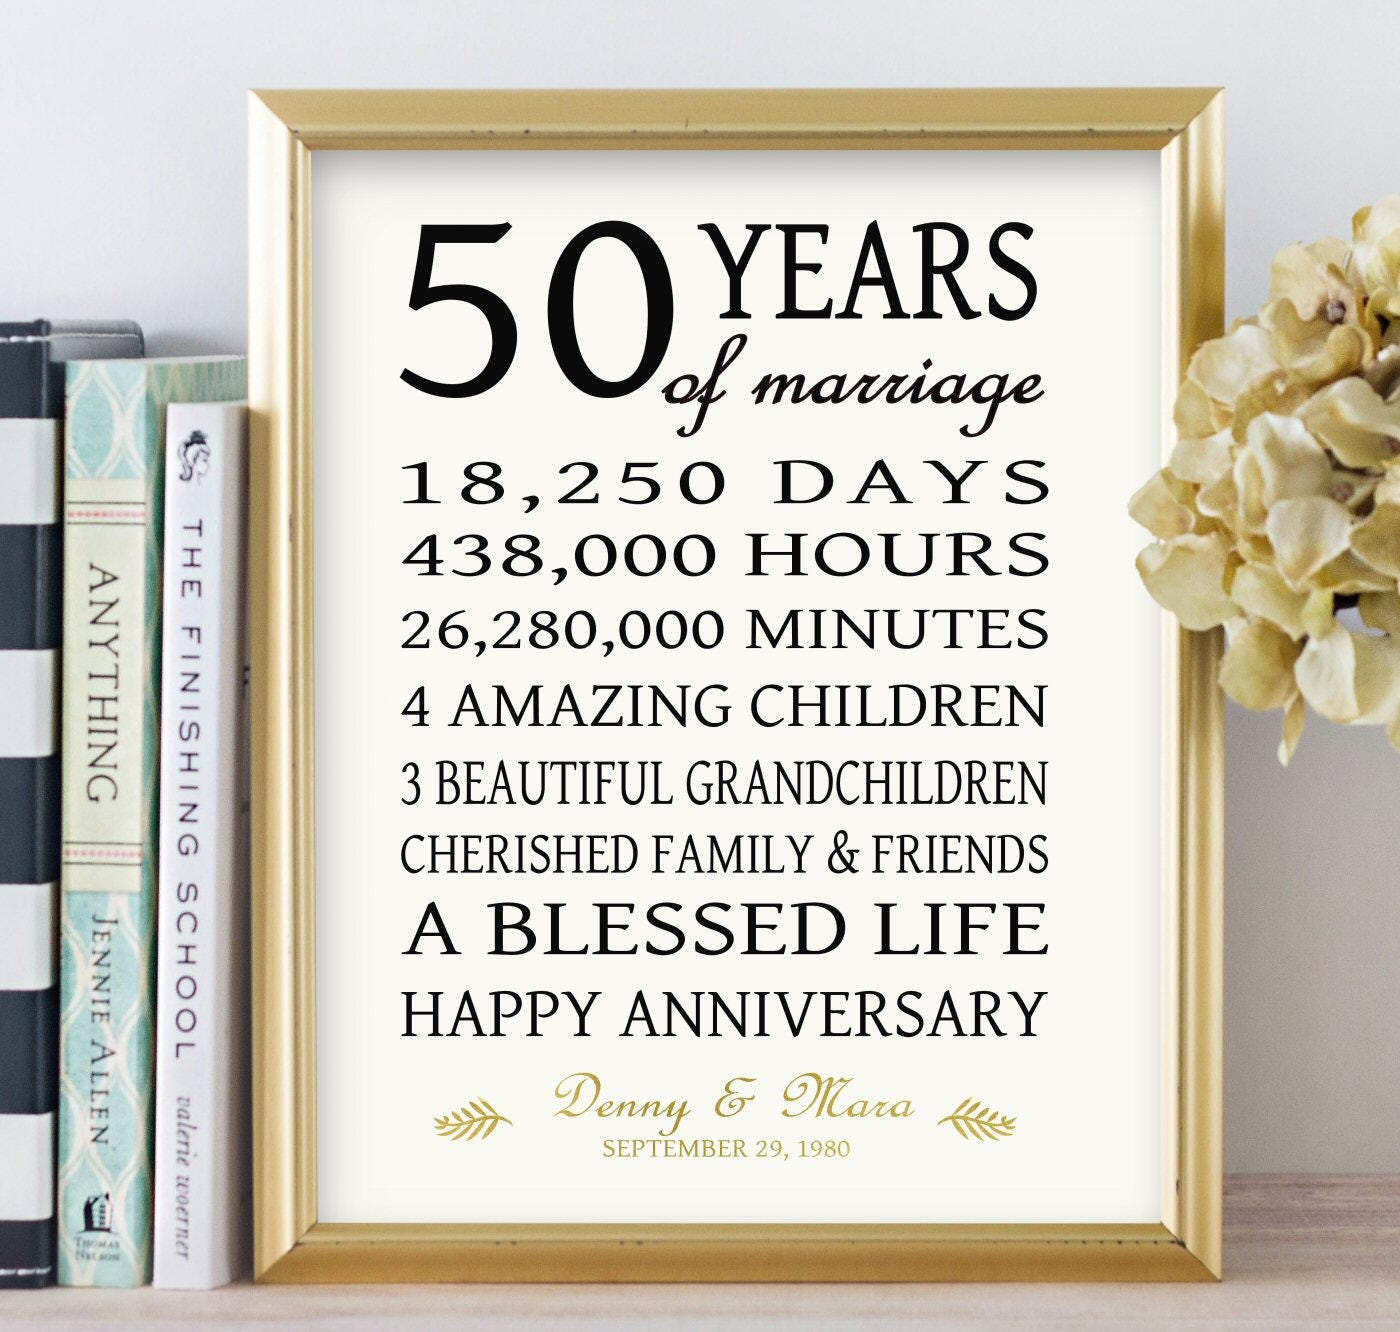 One Year Wedding Anniversary Gifts: 50th Anniversary Gift For Parents Golden 50 Years Wedding